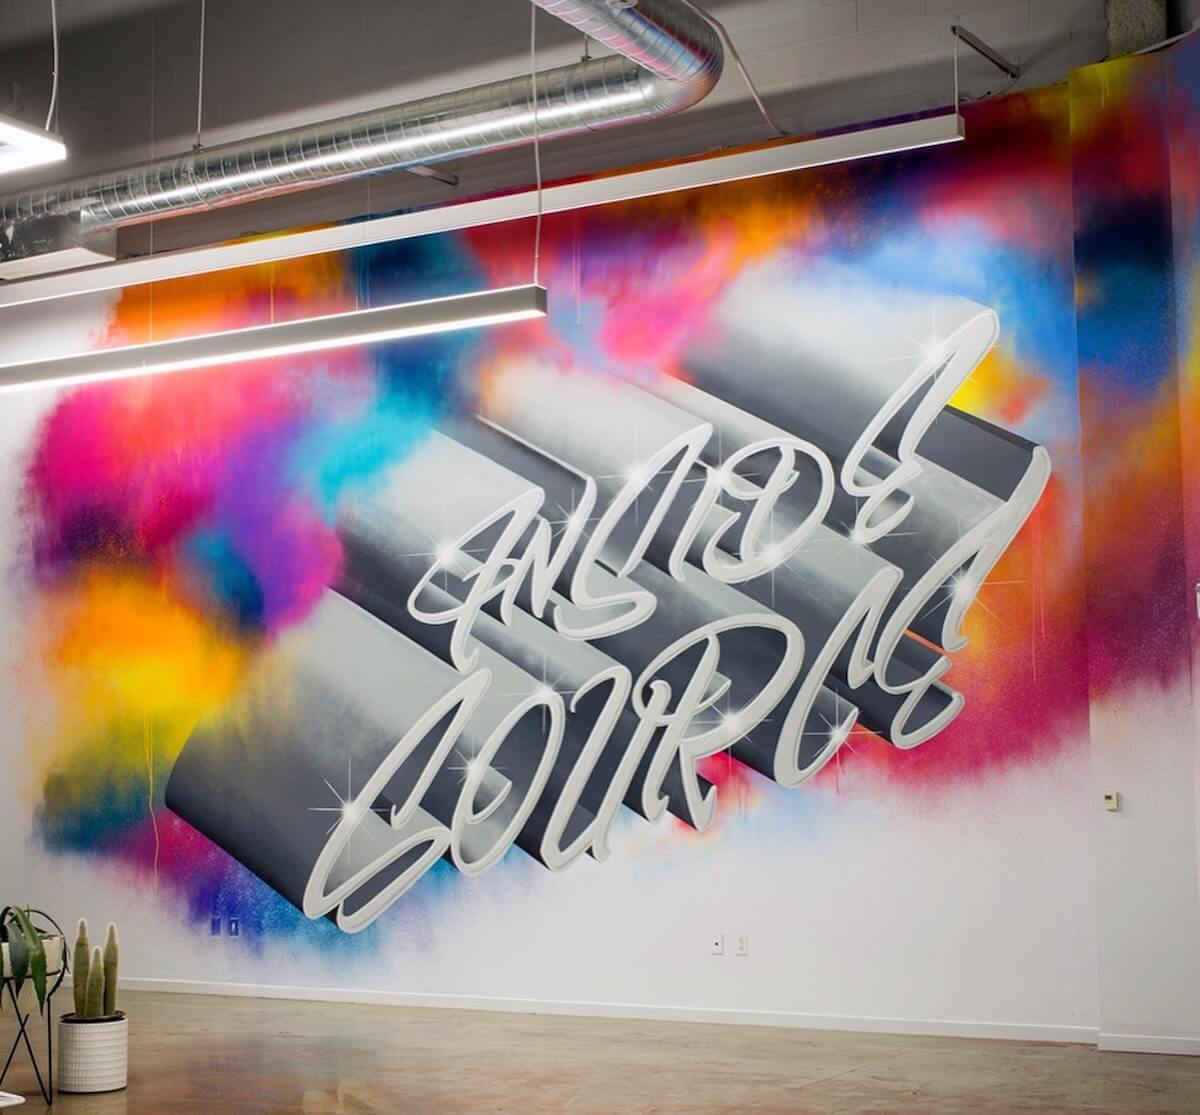 Commissioned Interior Mural for Inside Source | San Jose USA, 2017